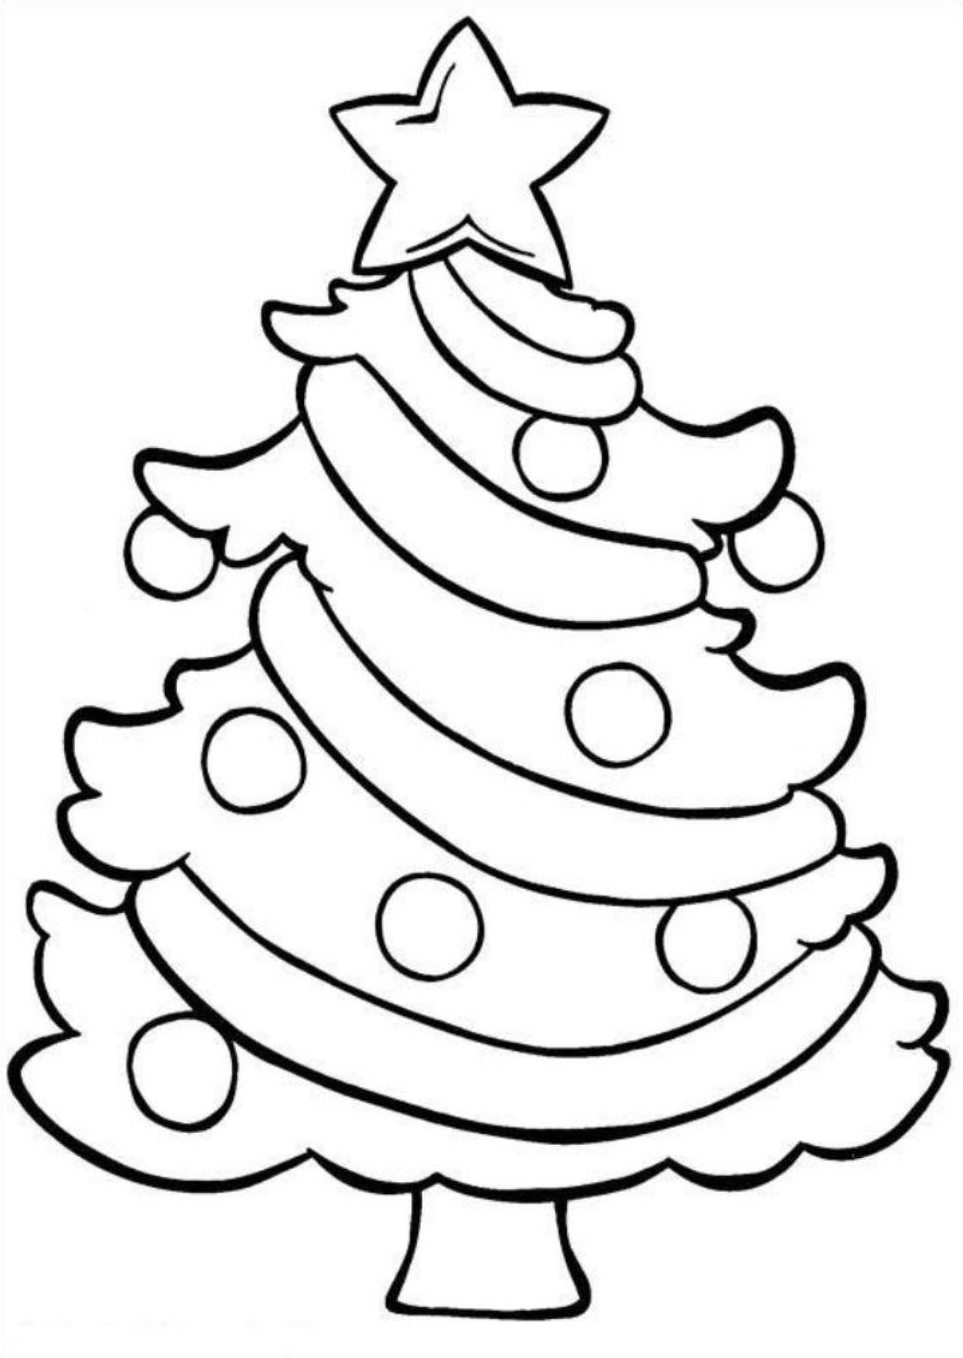 963x1358 easy christmas coloring pages printable coloring pages for kids - Easy Coloring Pages For Kids